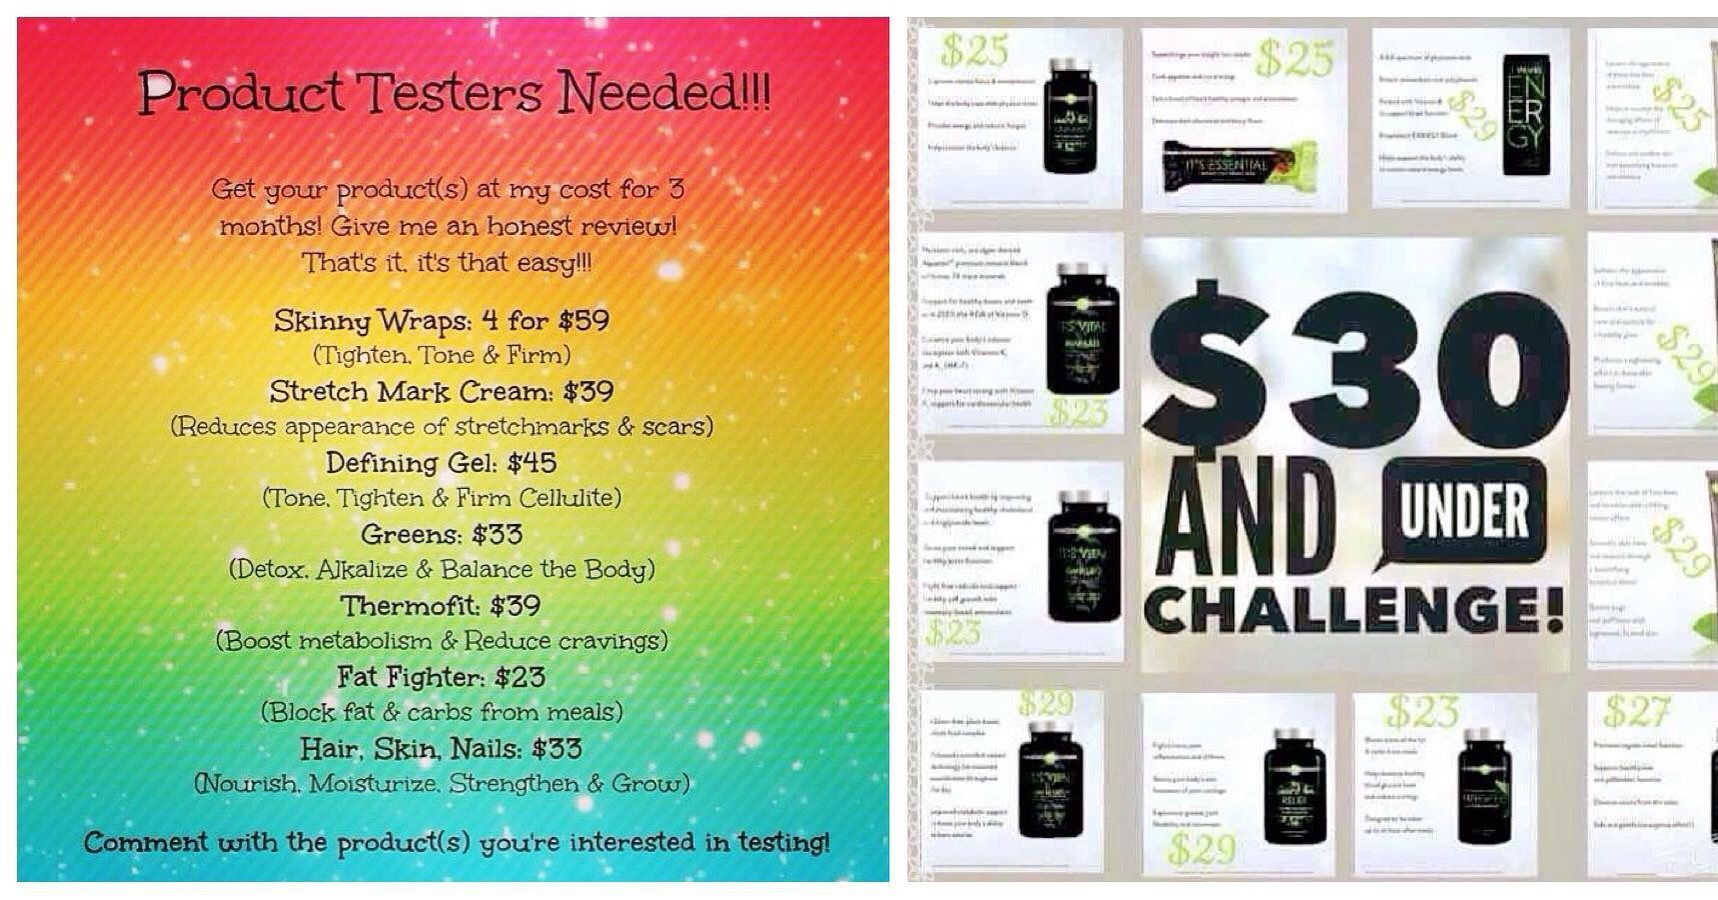 Looking for 3️⃣ product testers who'd like to help build my portfolio!! Pick your product, do a 90 day challenge at my distributor price and give me your honest review. No commitment after those 90 days‼️ Ask me how! Message me or text 623•202•2277